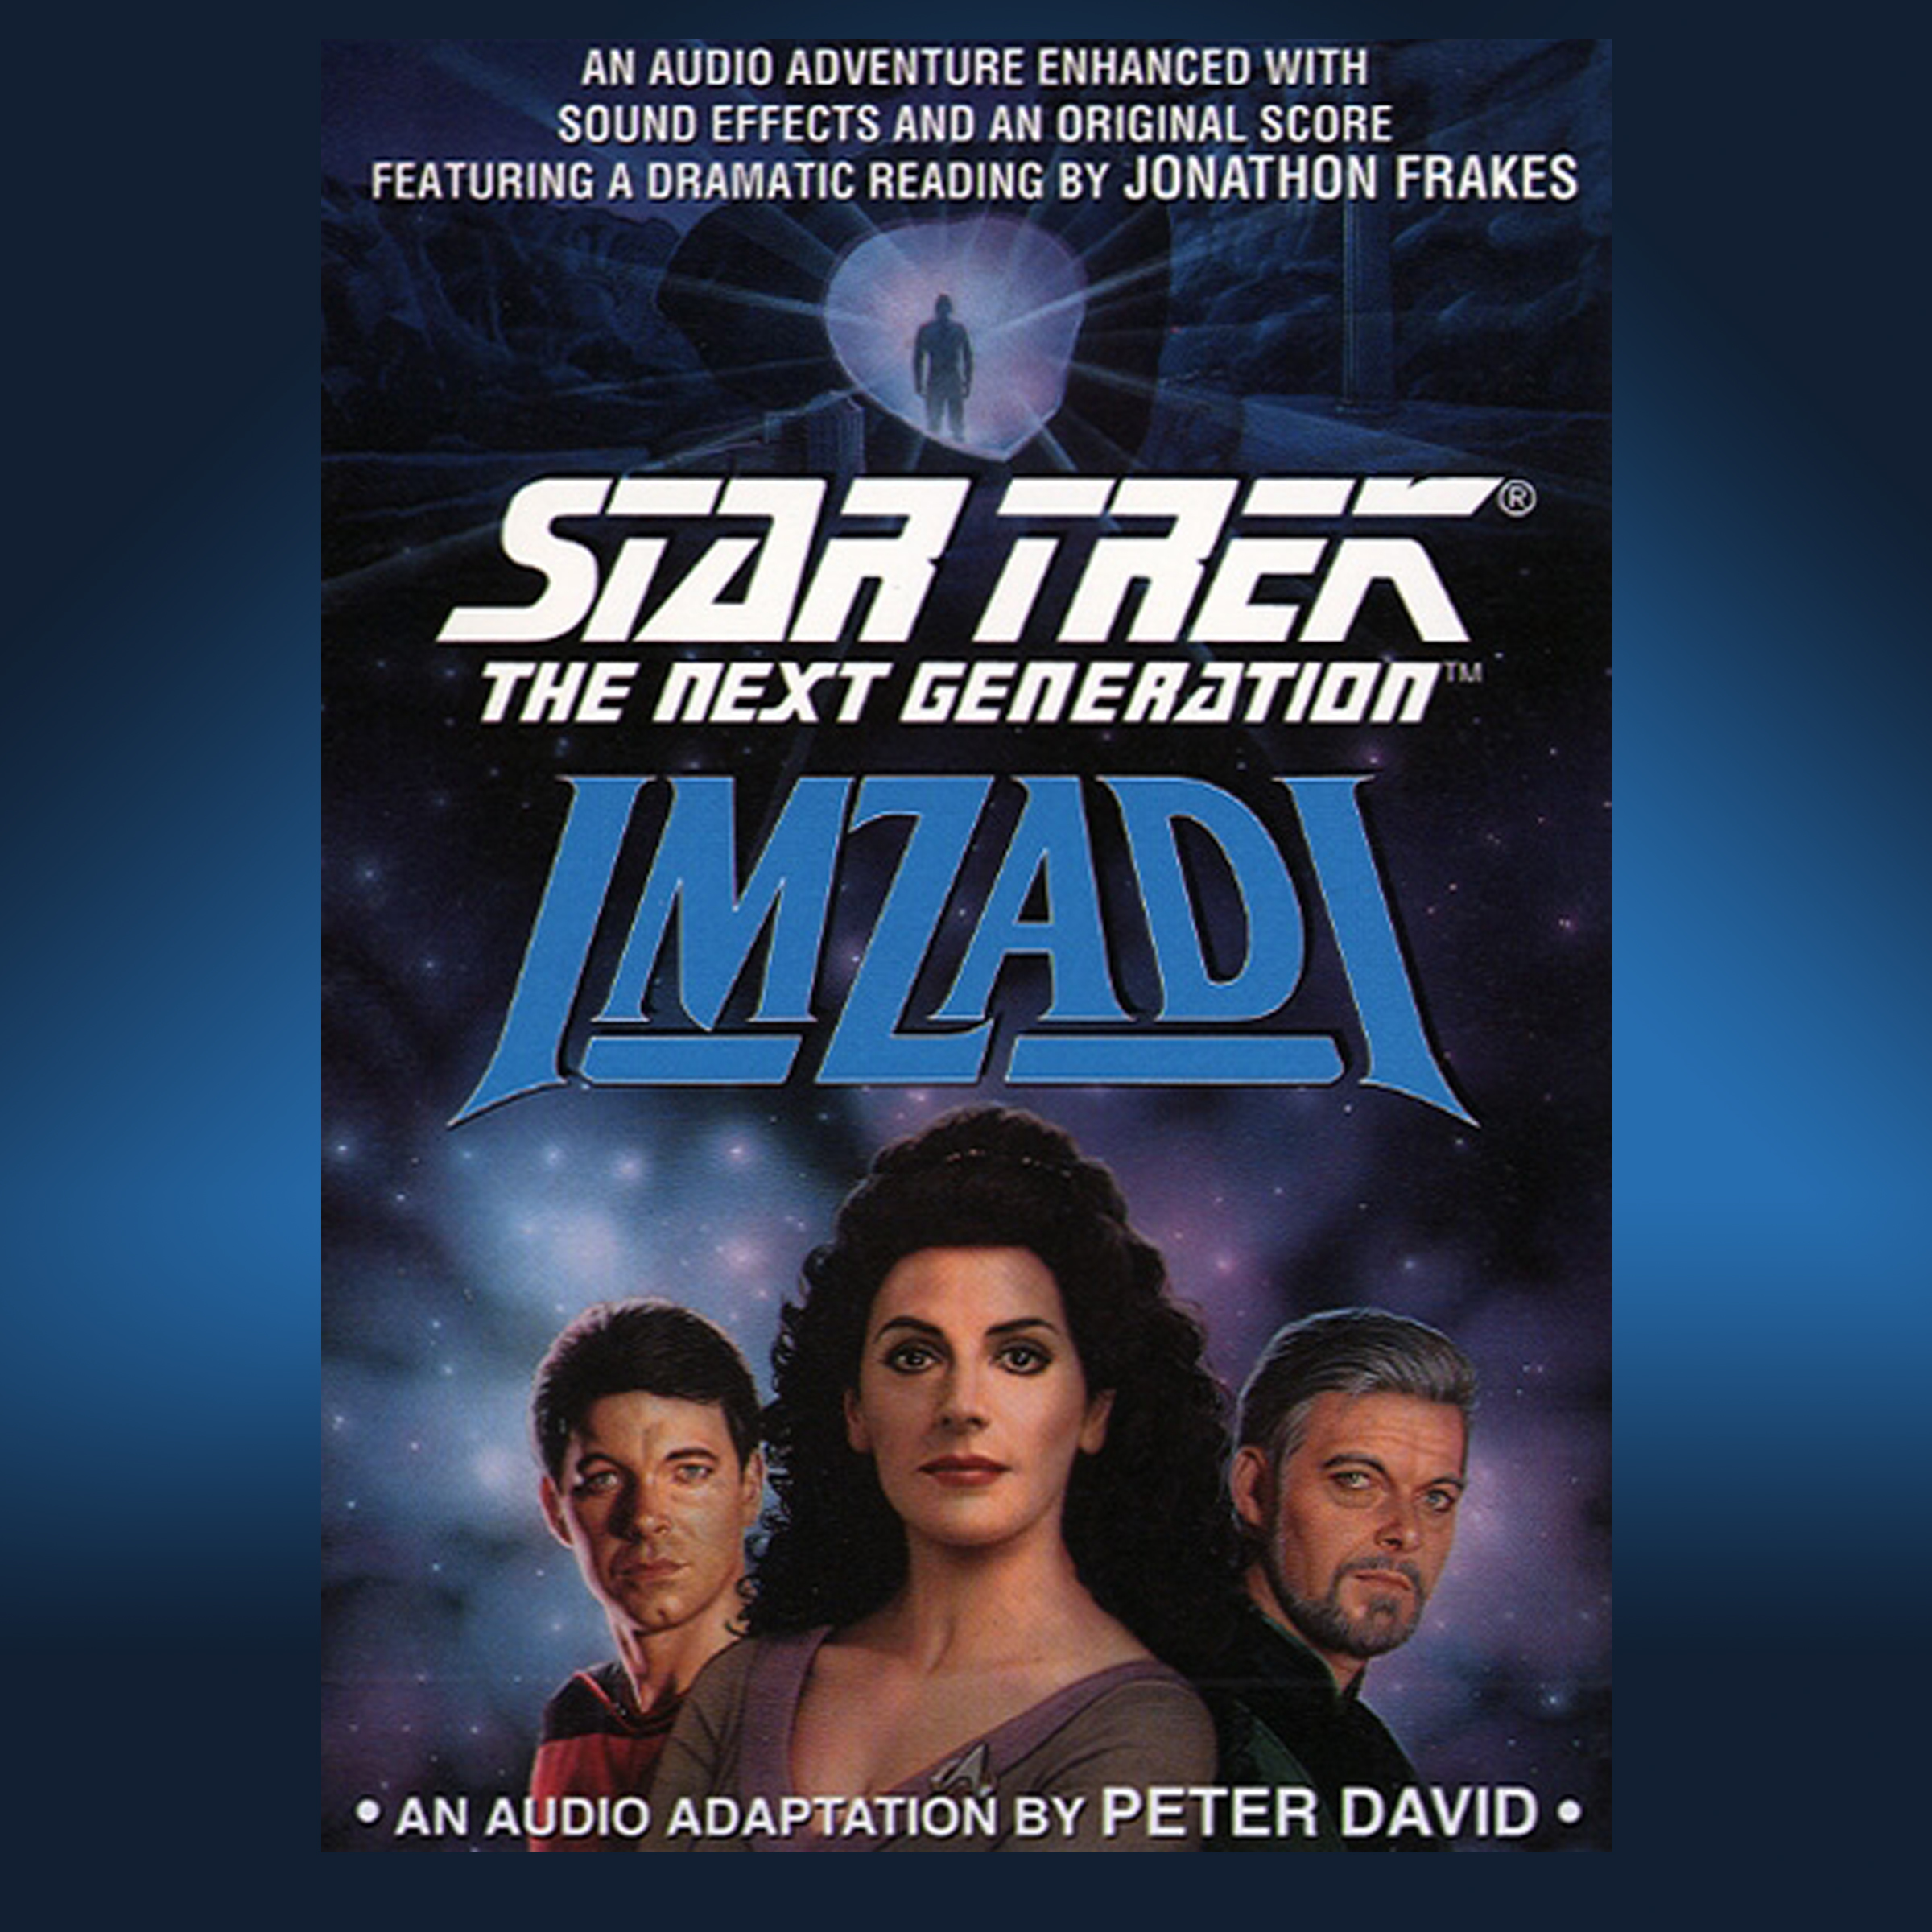 Star-trek-next-generation-imzadi-9780743546270_hr